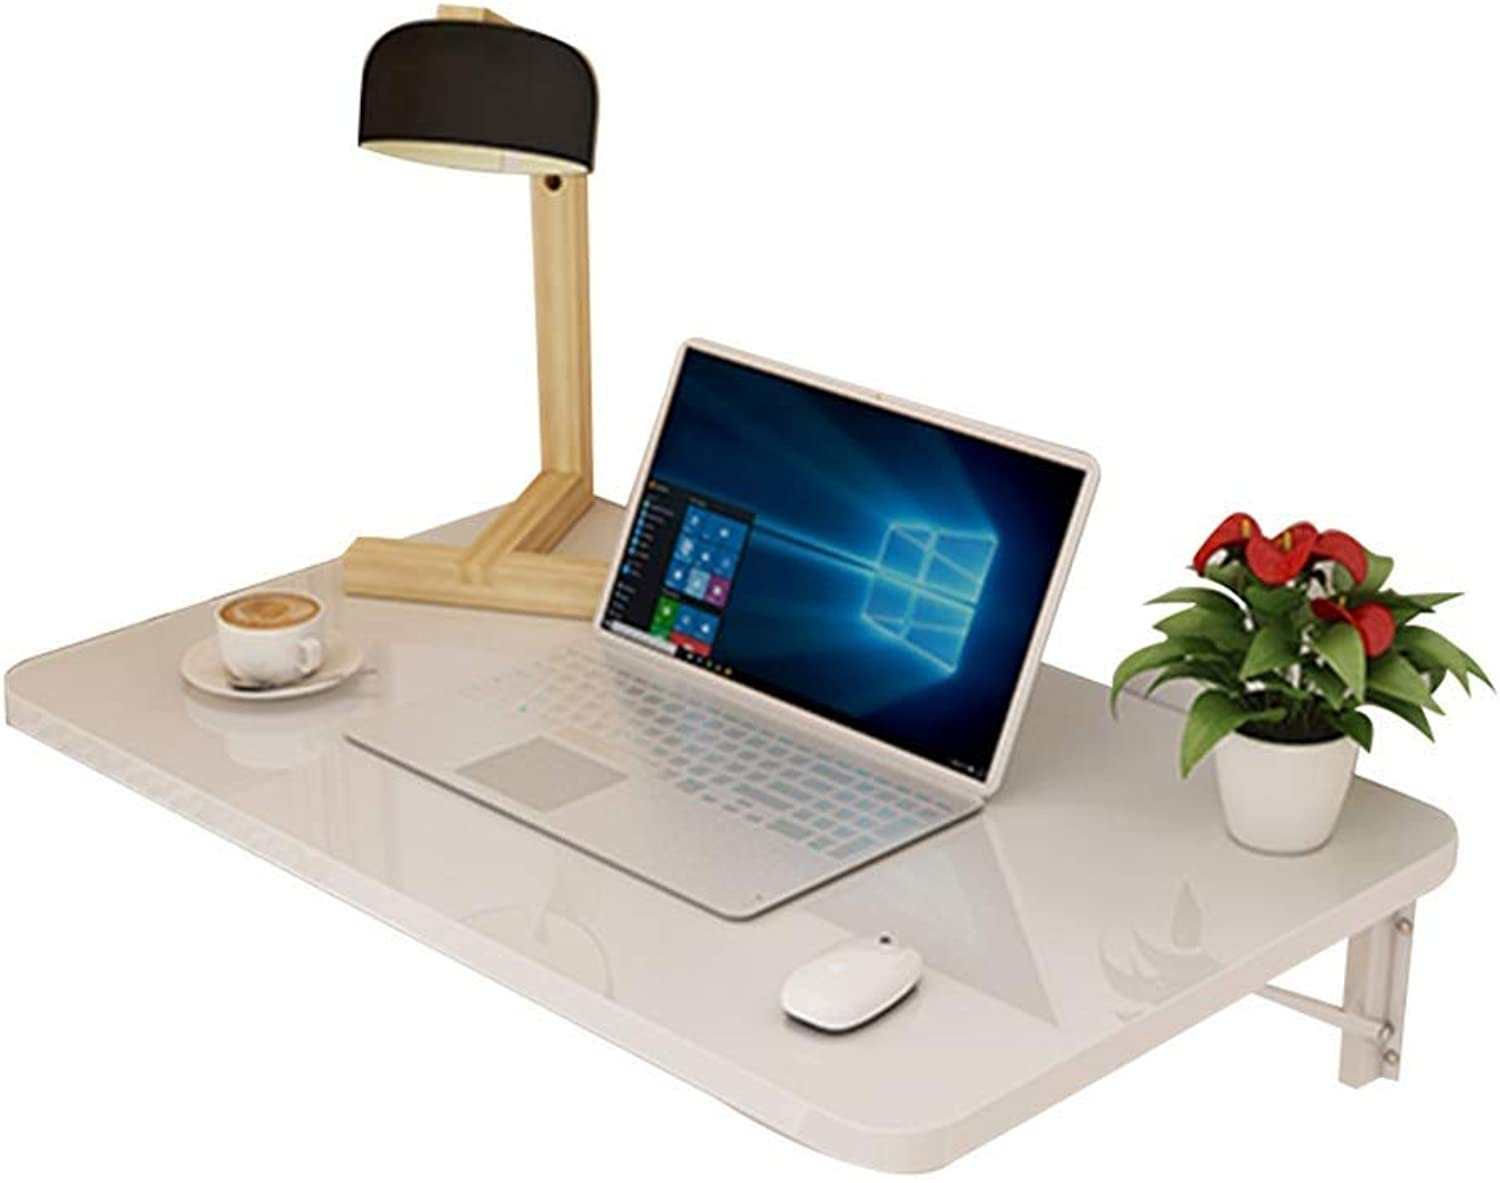 Paint Wall Hanging Table Table Table Wall Table Wall Table Wall Table Computer Table - White, 10 Sizes == (color   White, Size   60x40cm)